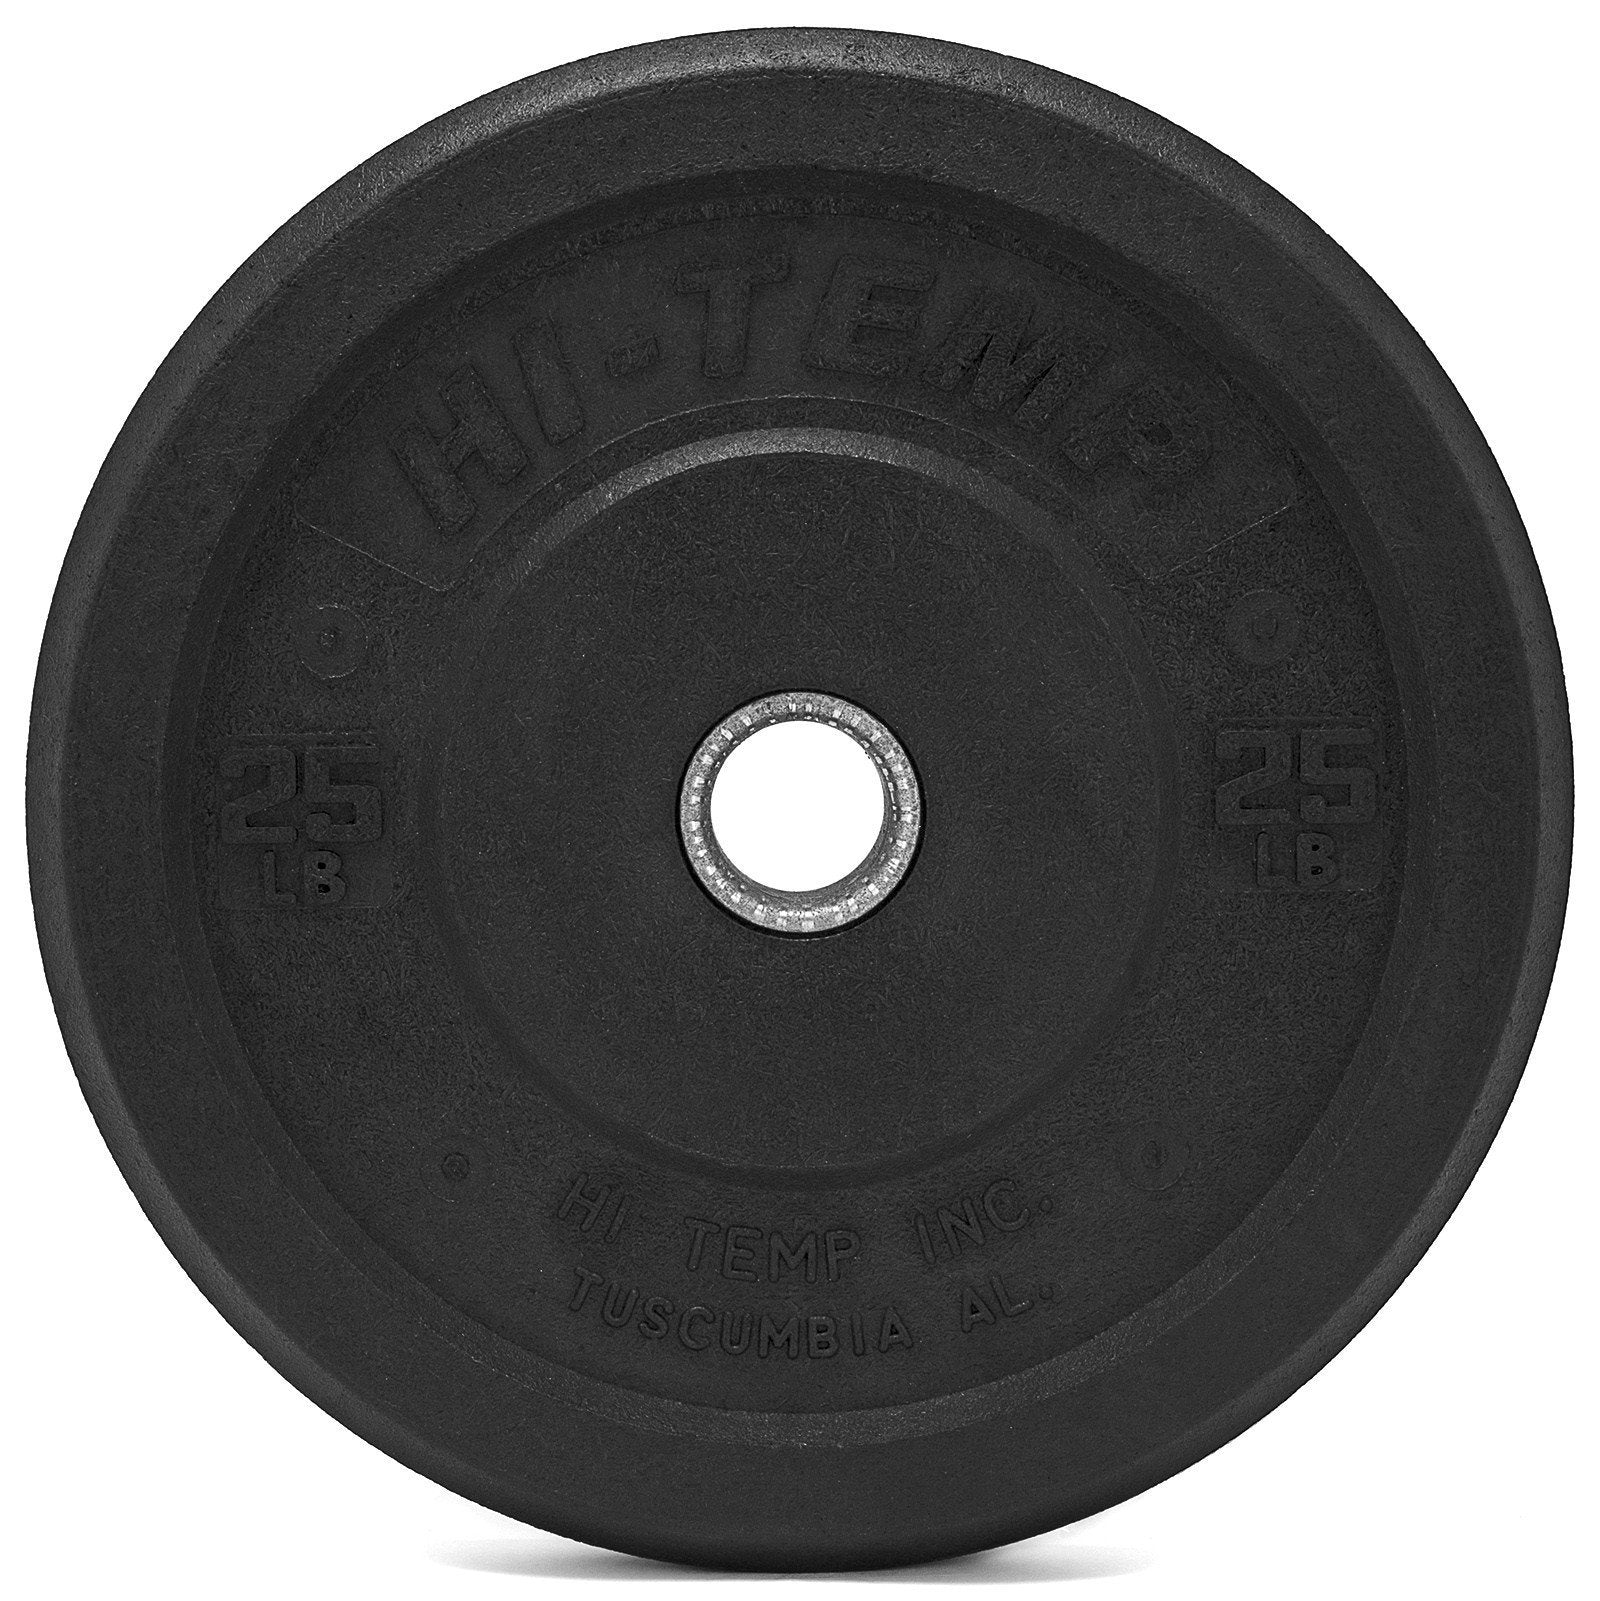 Hi Temp Bumper Plate Sets For Crossfit And Olympic